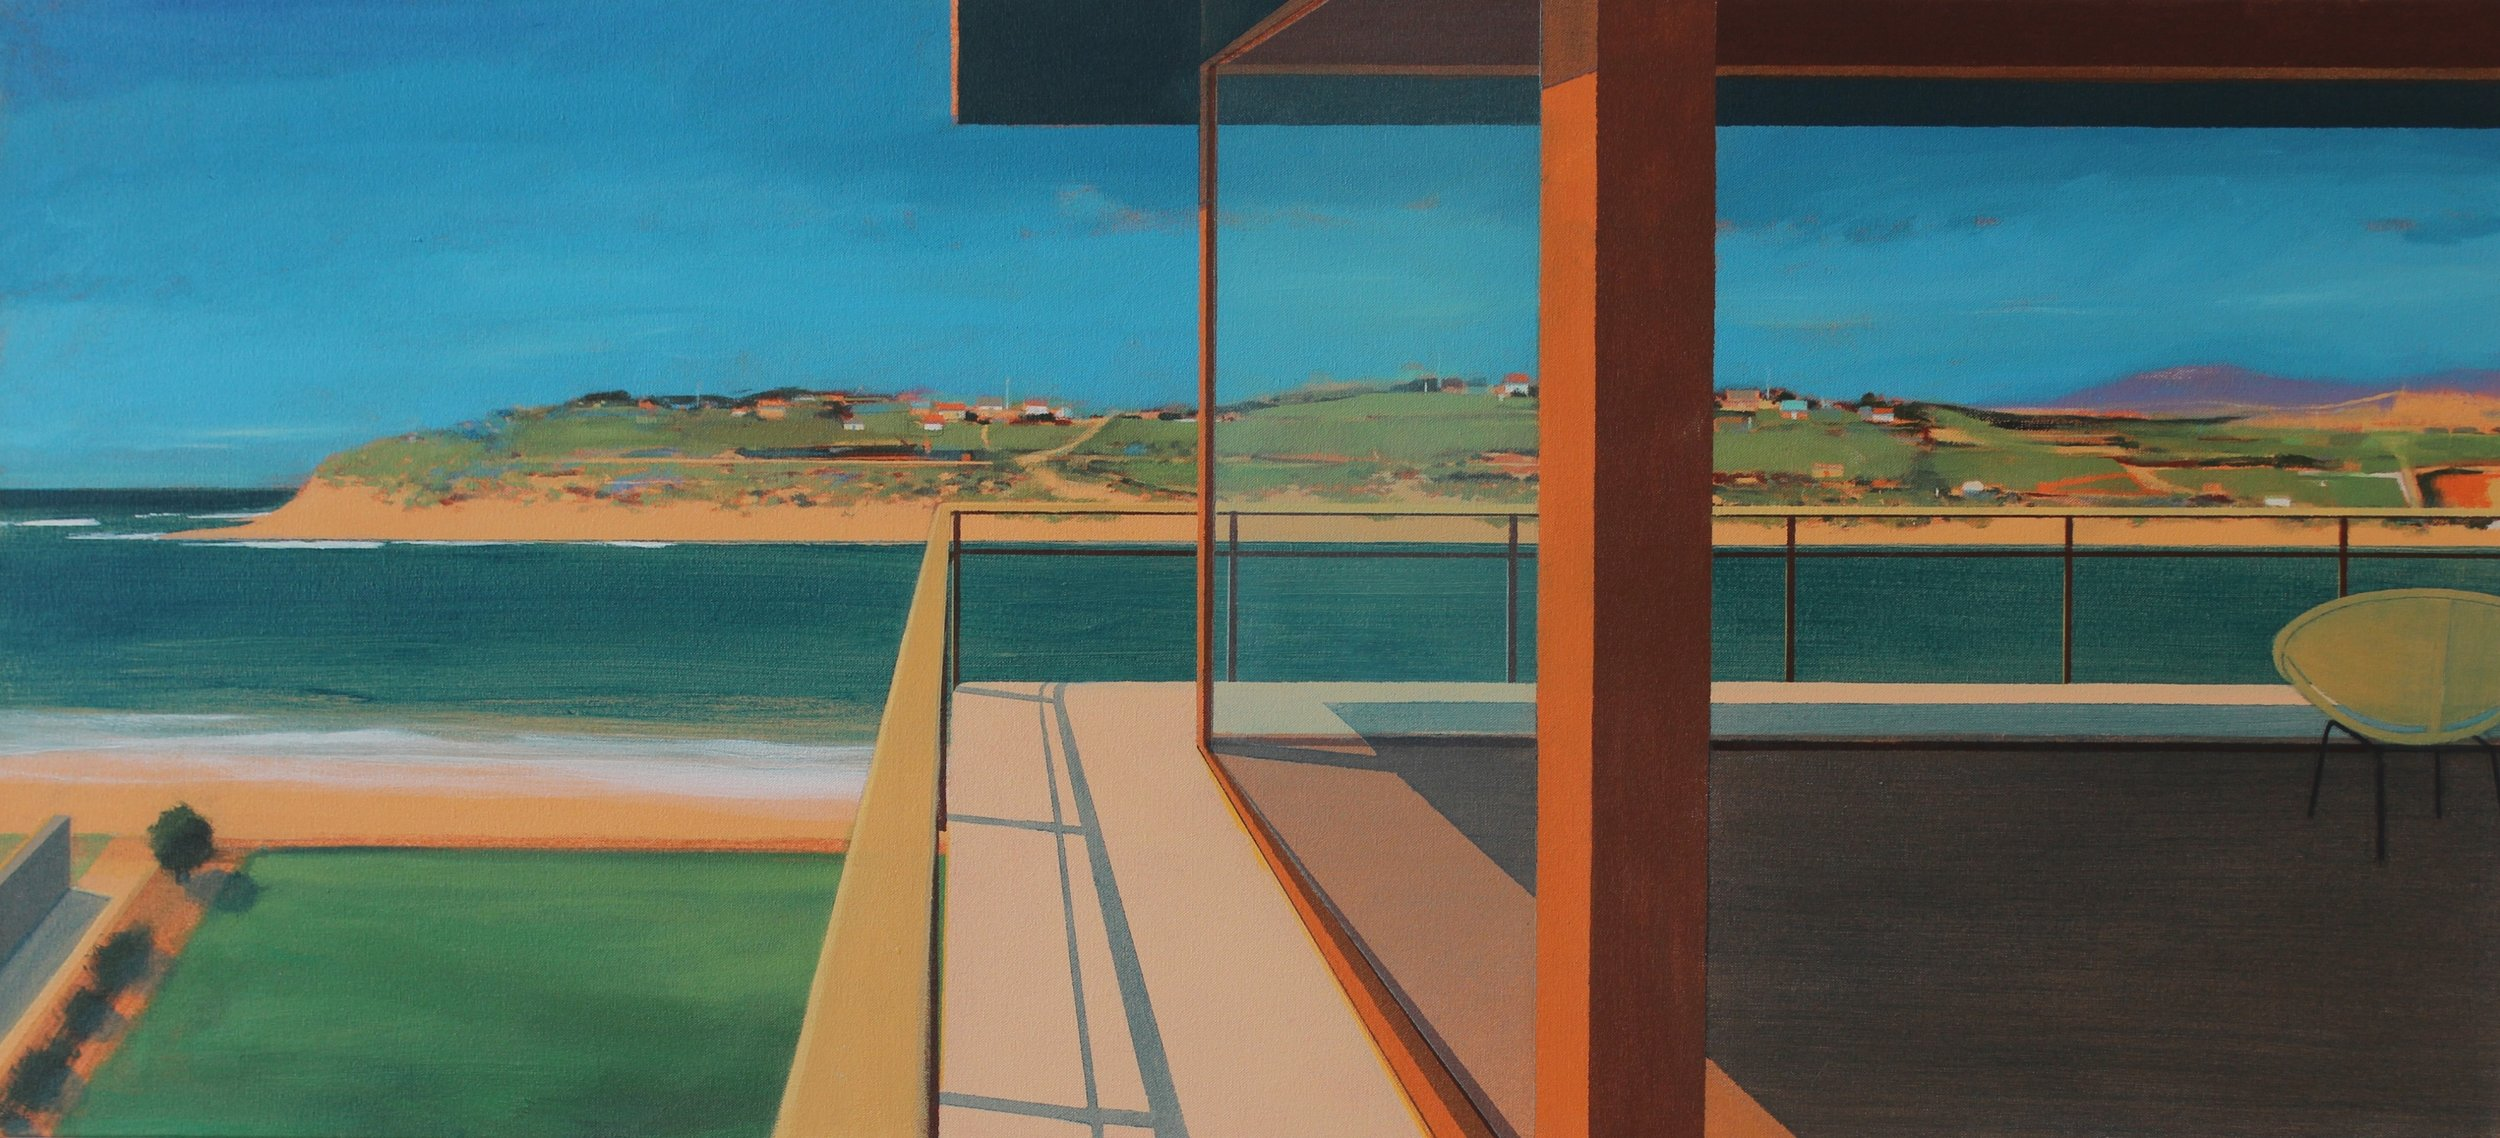 'Hayle Rivermouth, Cornwall', Alasdair Lindsay, Acrylic on canvas, 52 x 112 x 5 cm